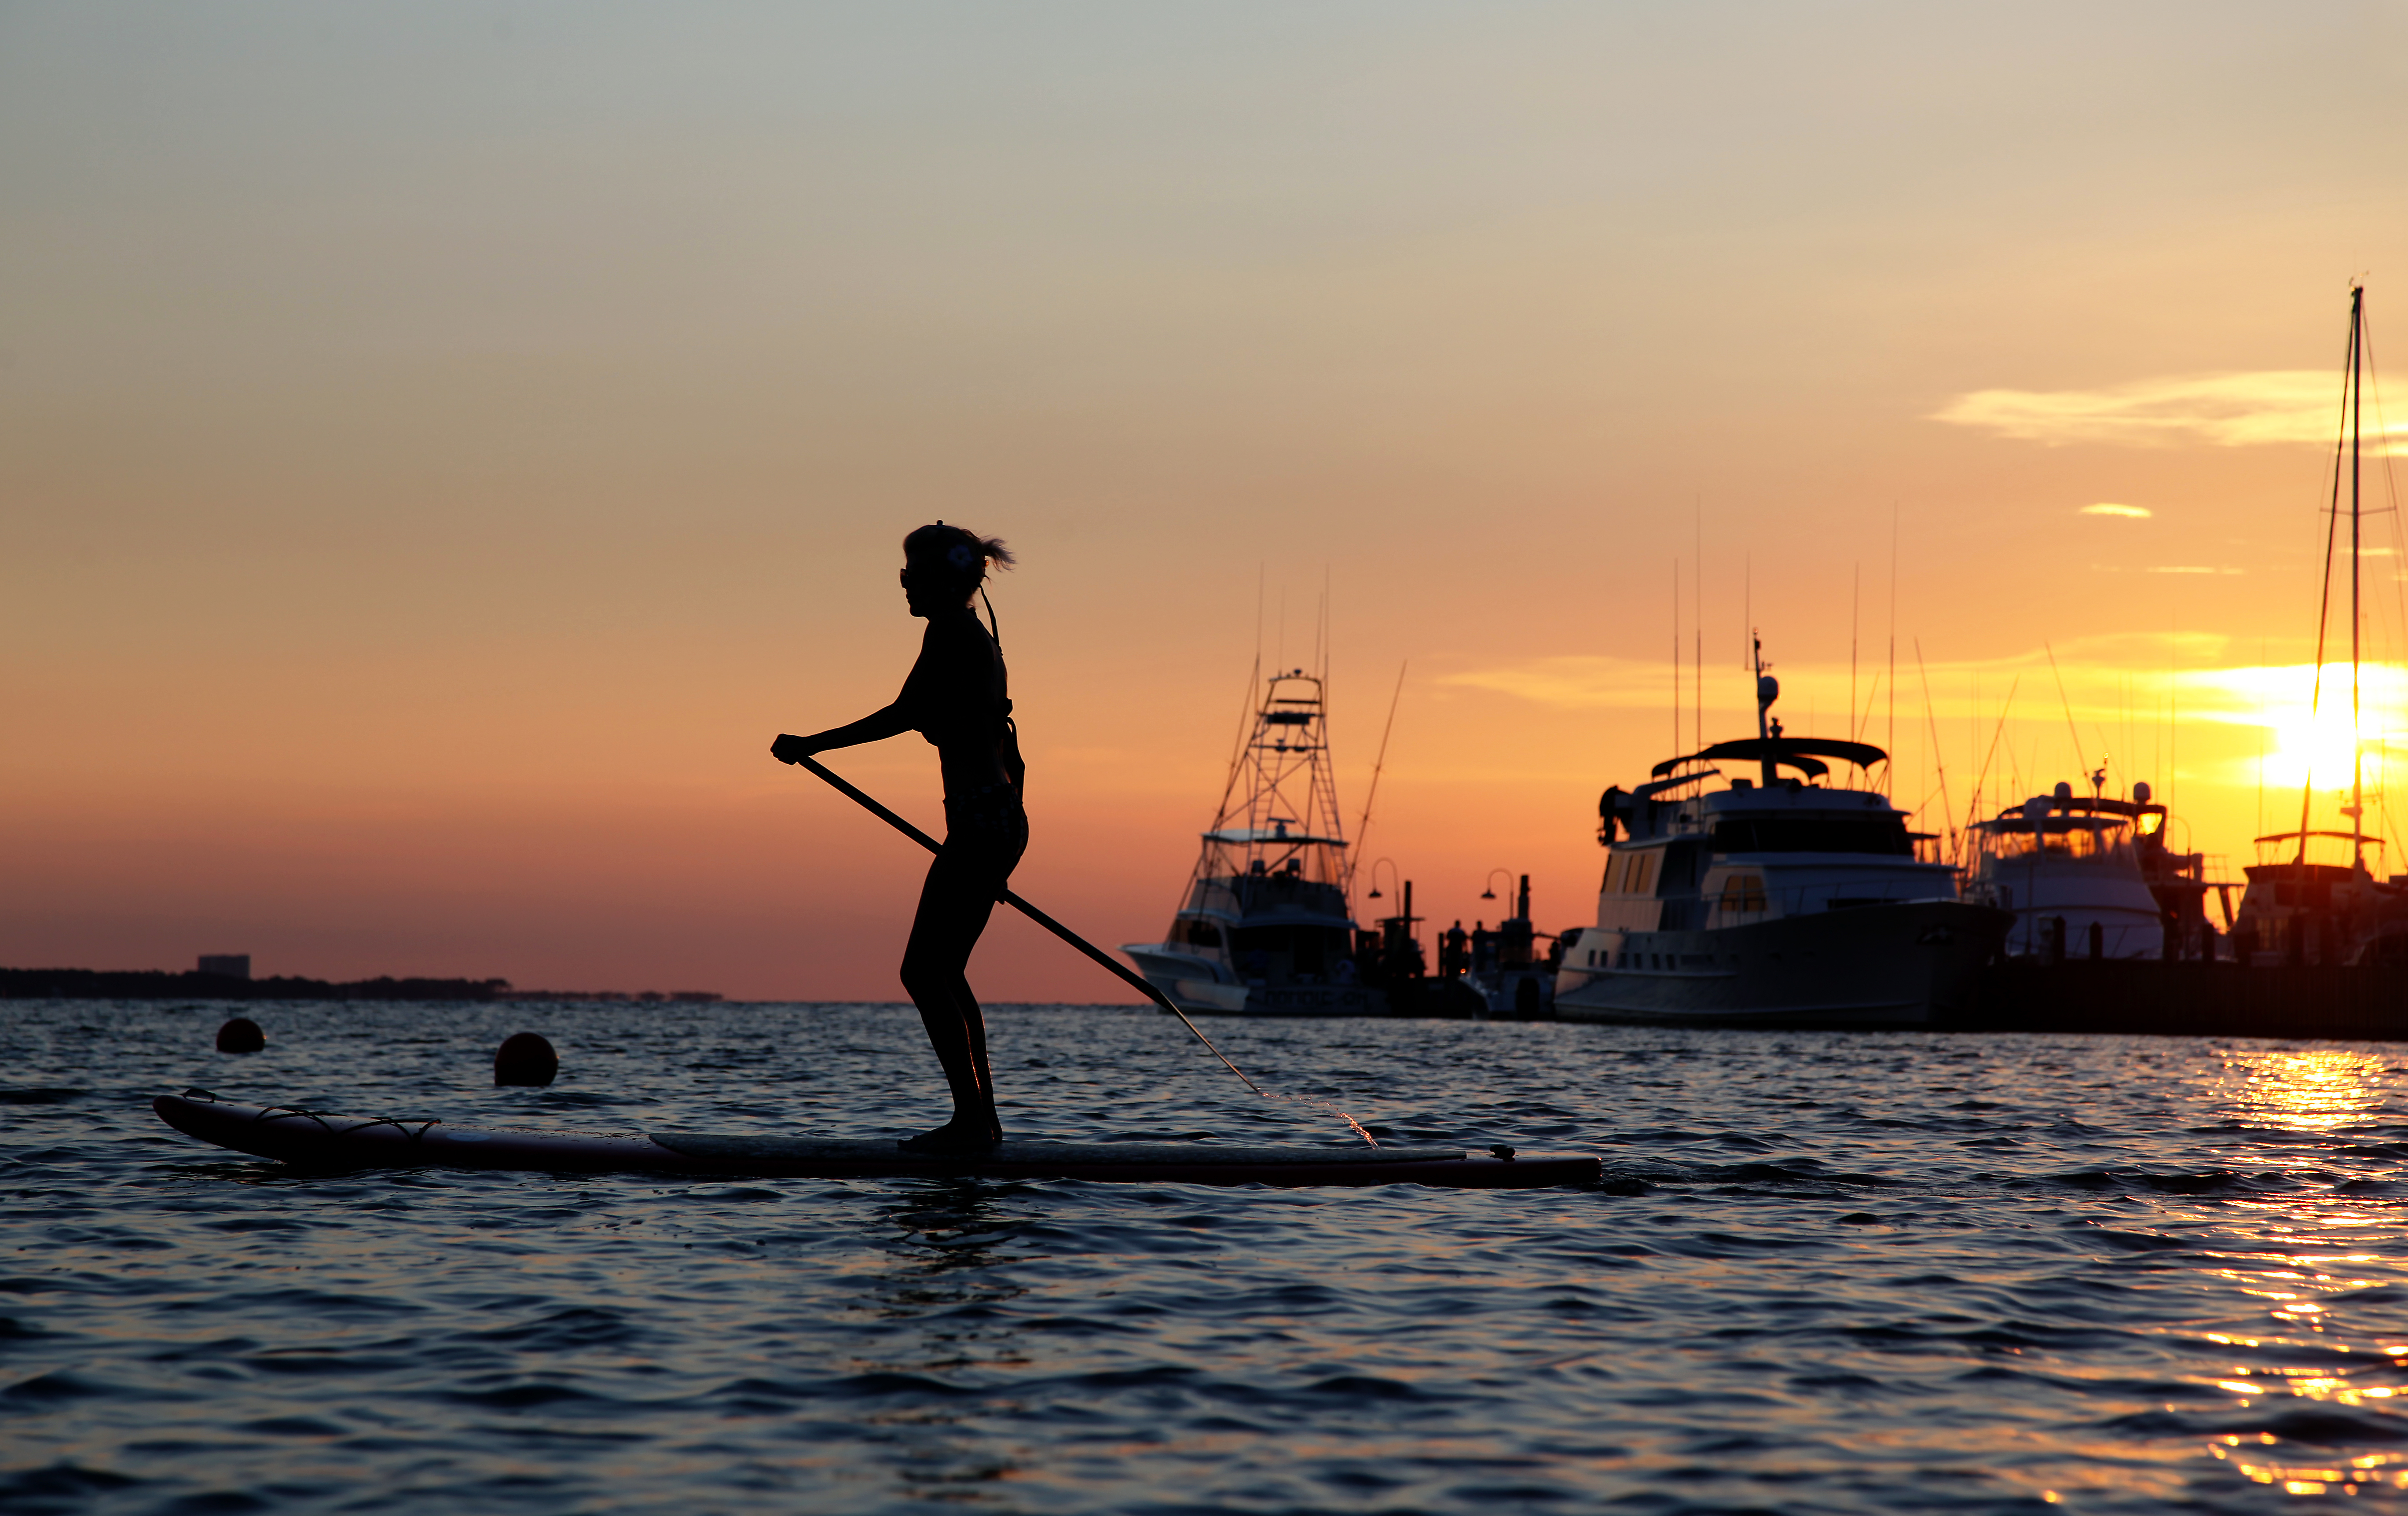 Paddleboarding, Destin Sports, Things to do in Destin